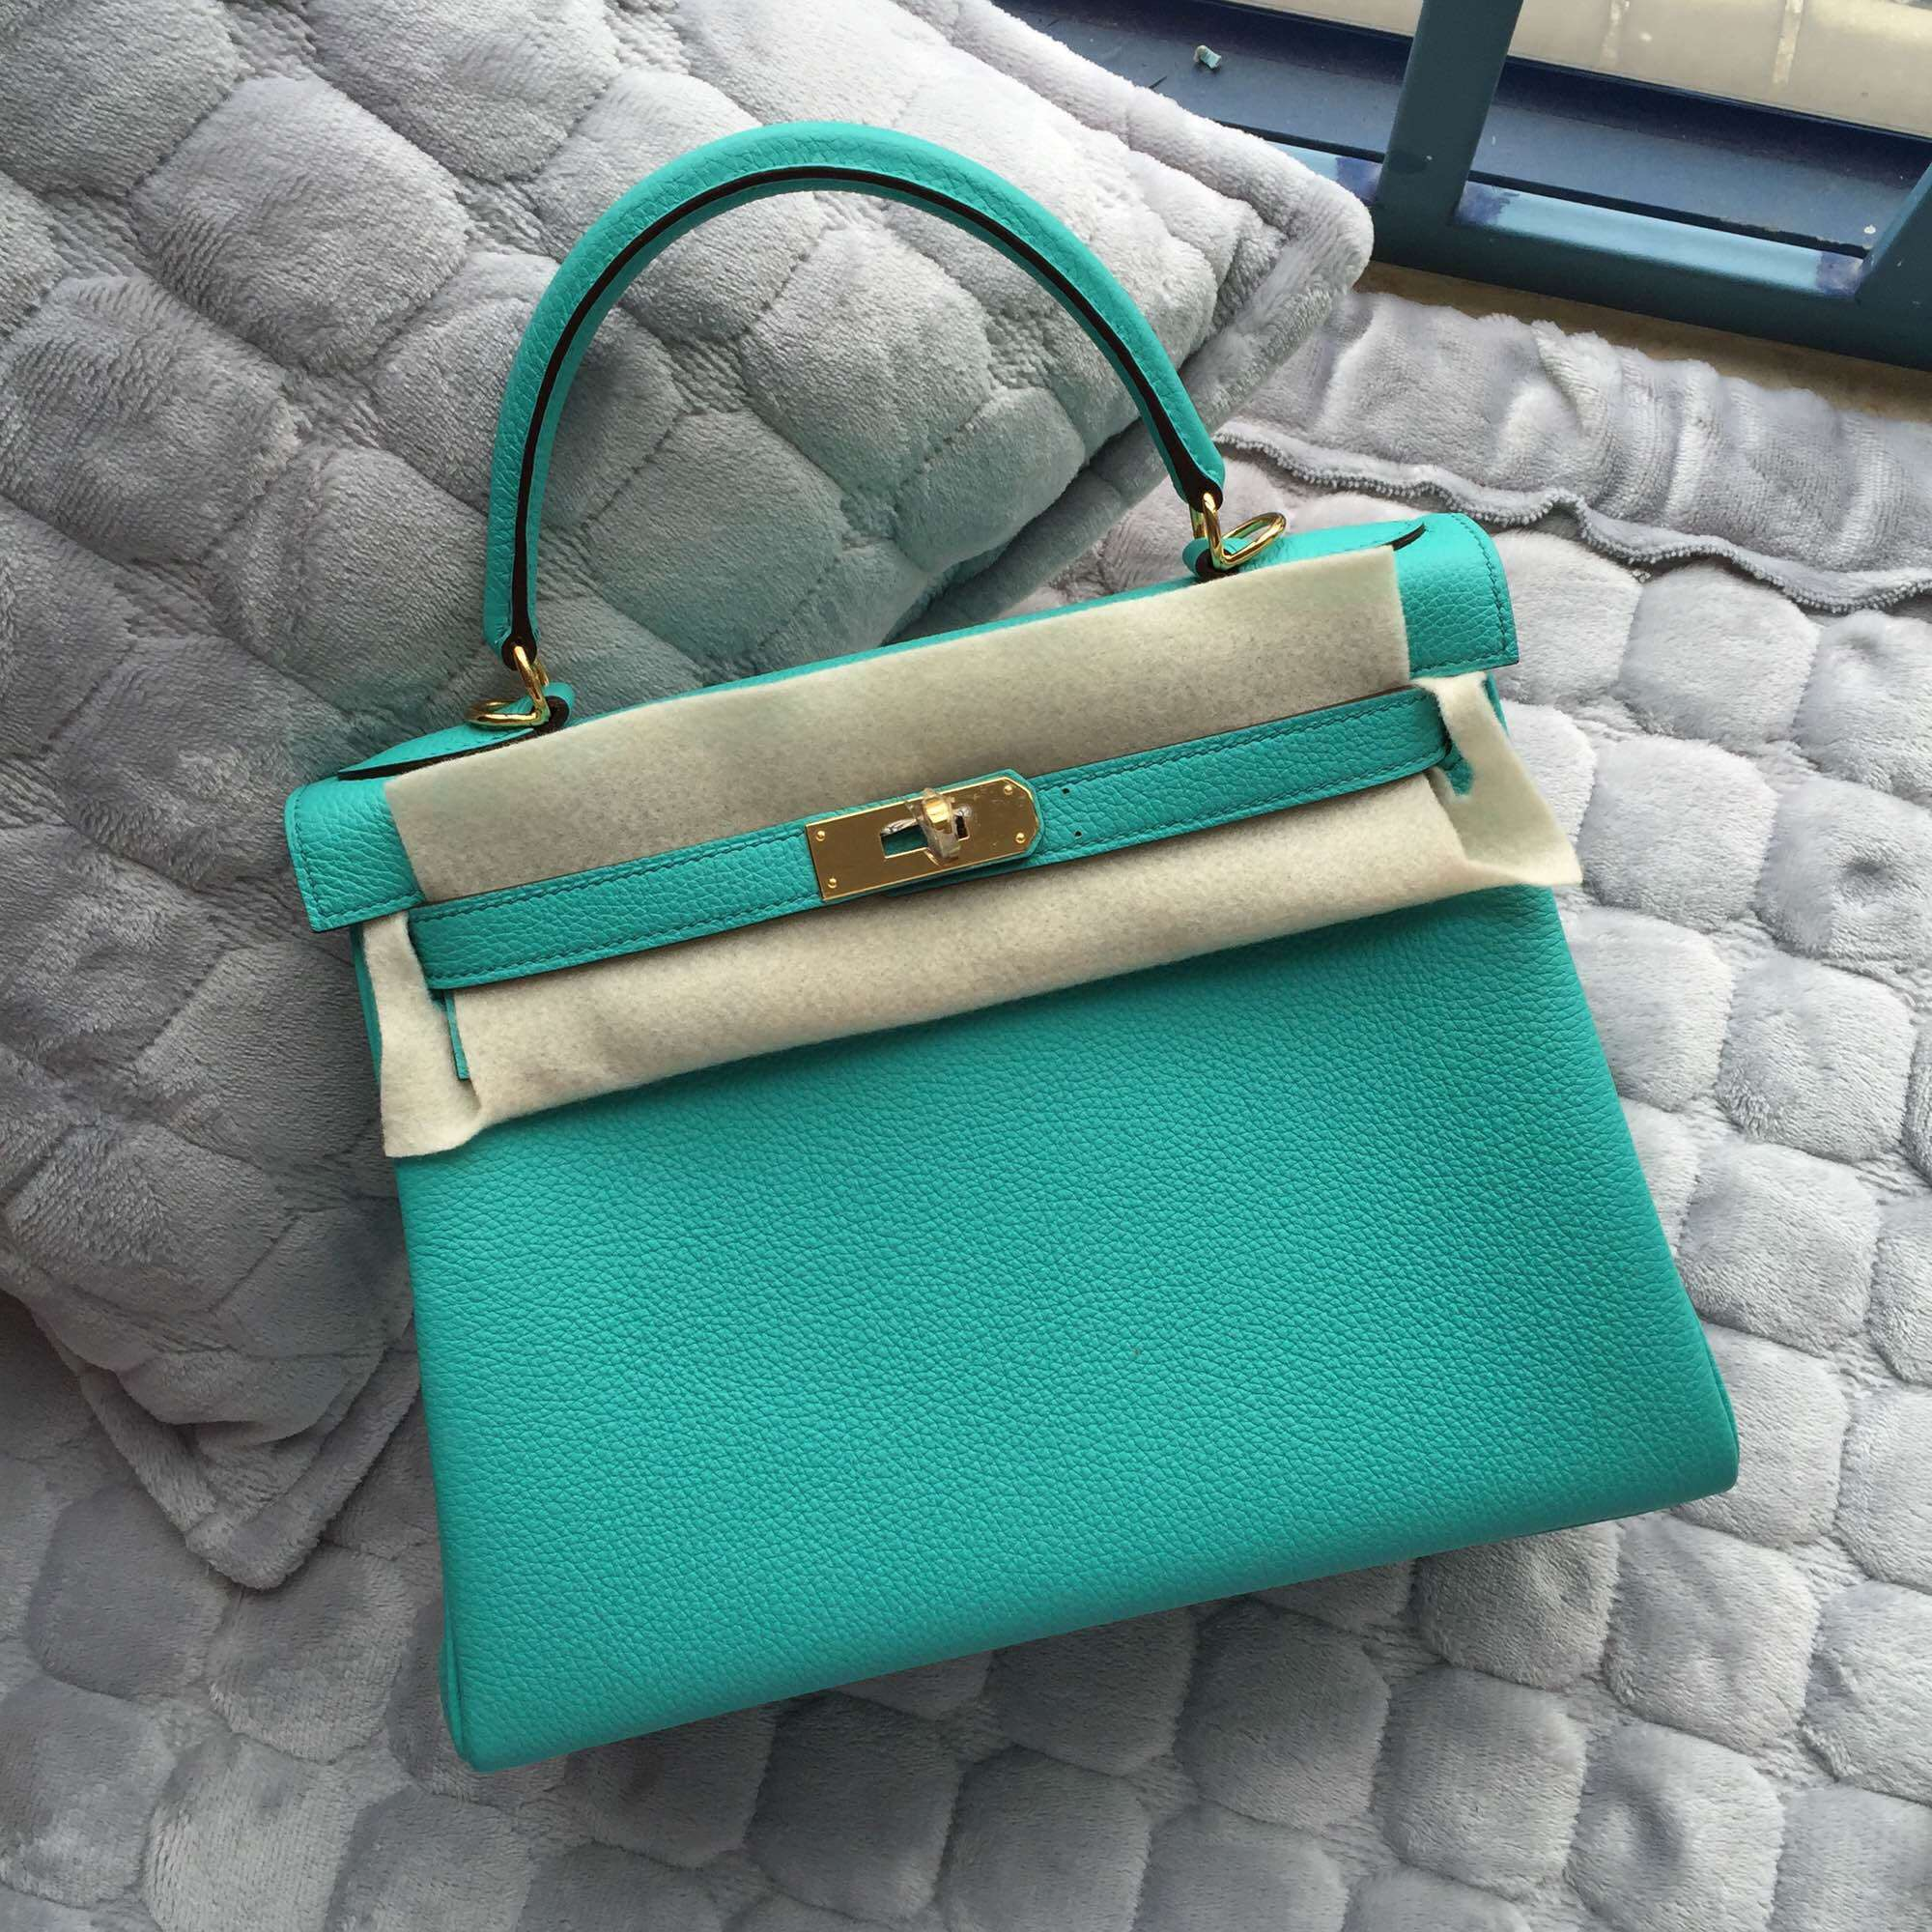 9fb4f6600cf6 Fashion Hermes Kelly Bag Retourne 28CM in 7V Lake Green Togo Leather Gold  Hardware